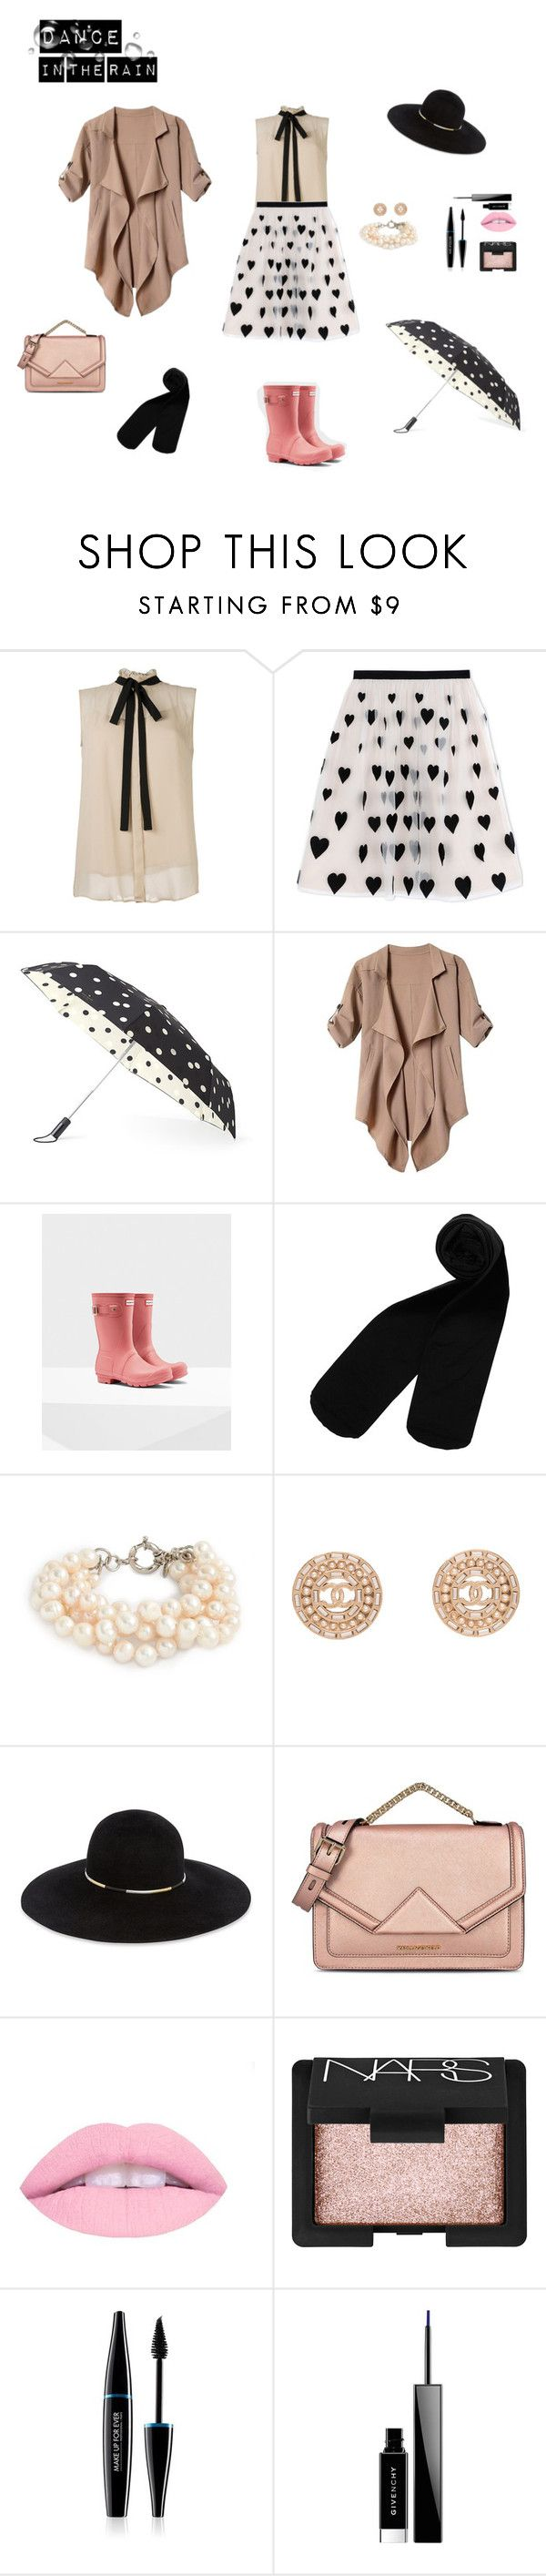 """Dance In The Rain"" by nikyx on Polyvore featuring Alice + Olivia, Kate Spade, Monki, J.Crew, Chanel, Eugenia Kim, Karl Lagerfeld, NARS Cosmetics, MAKE UP FOR EVER and Givenchy"